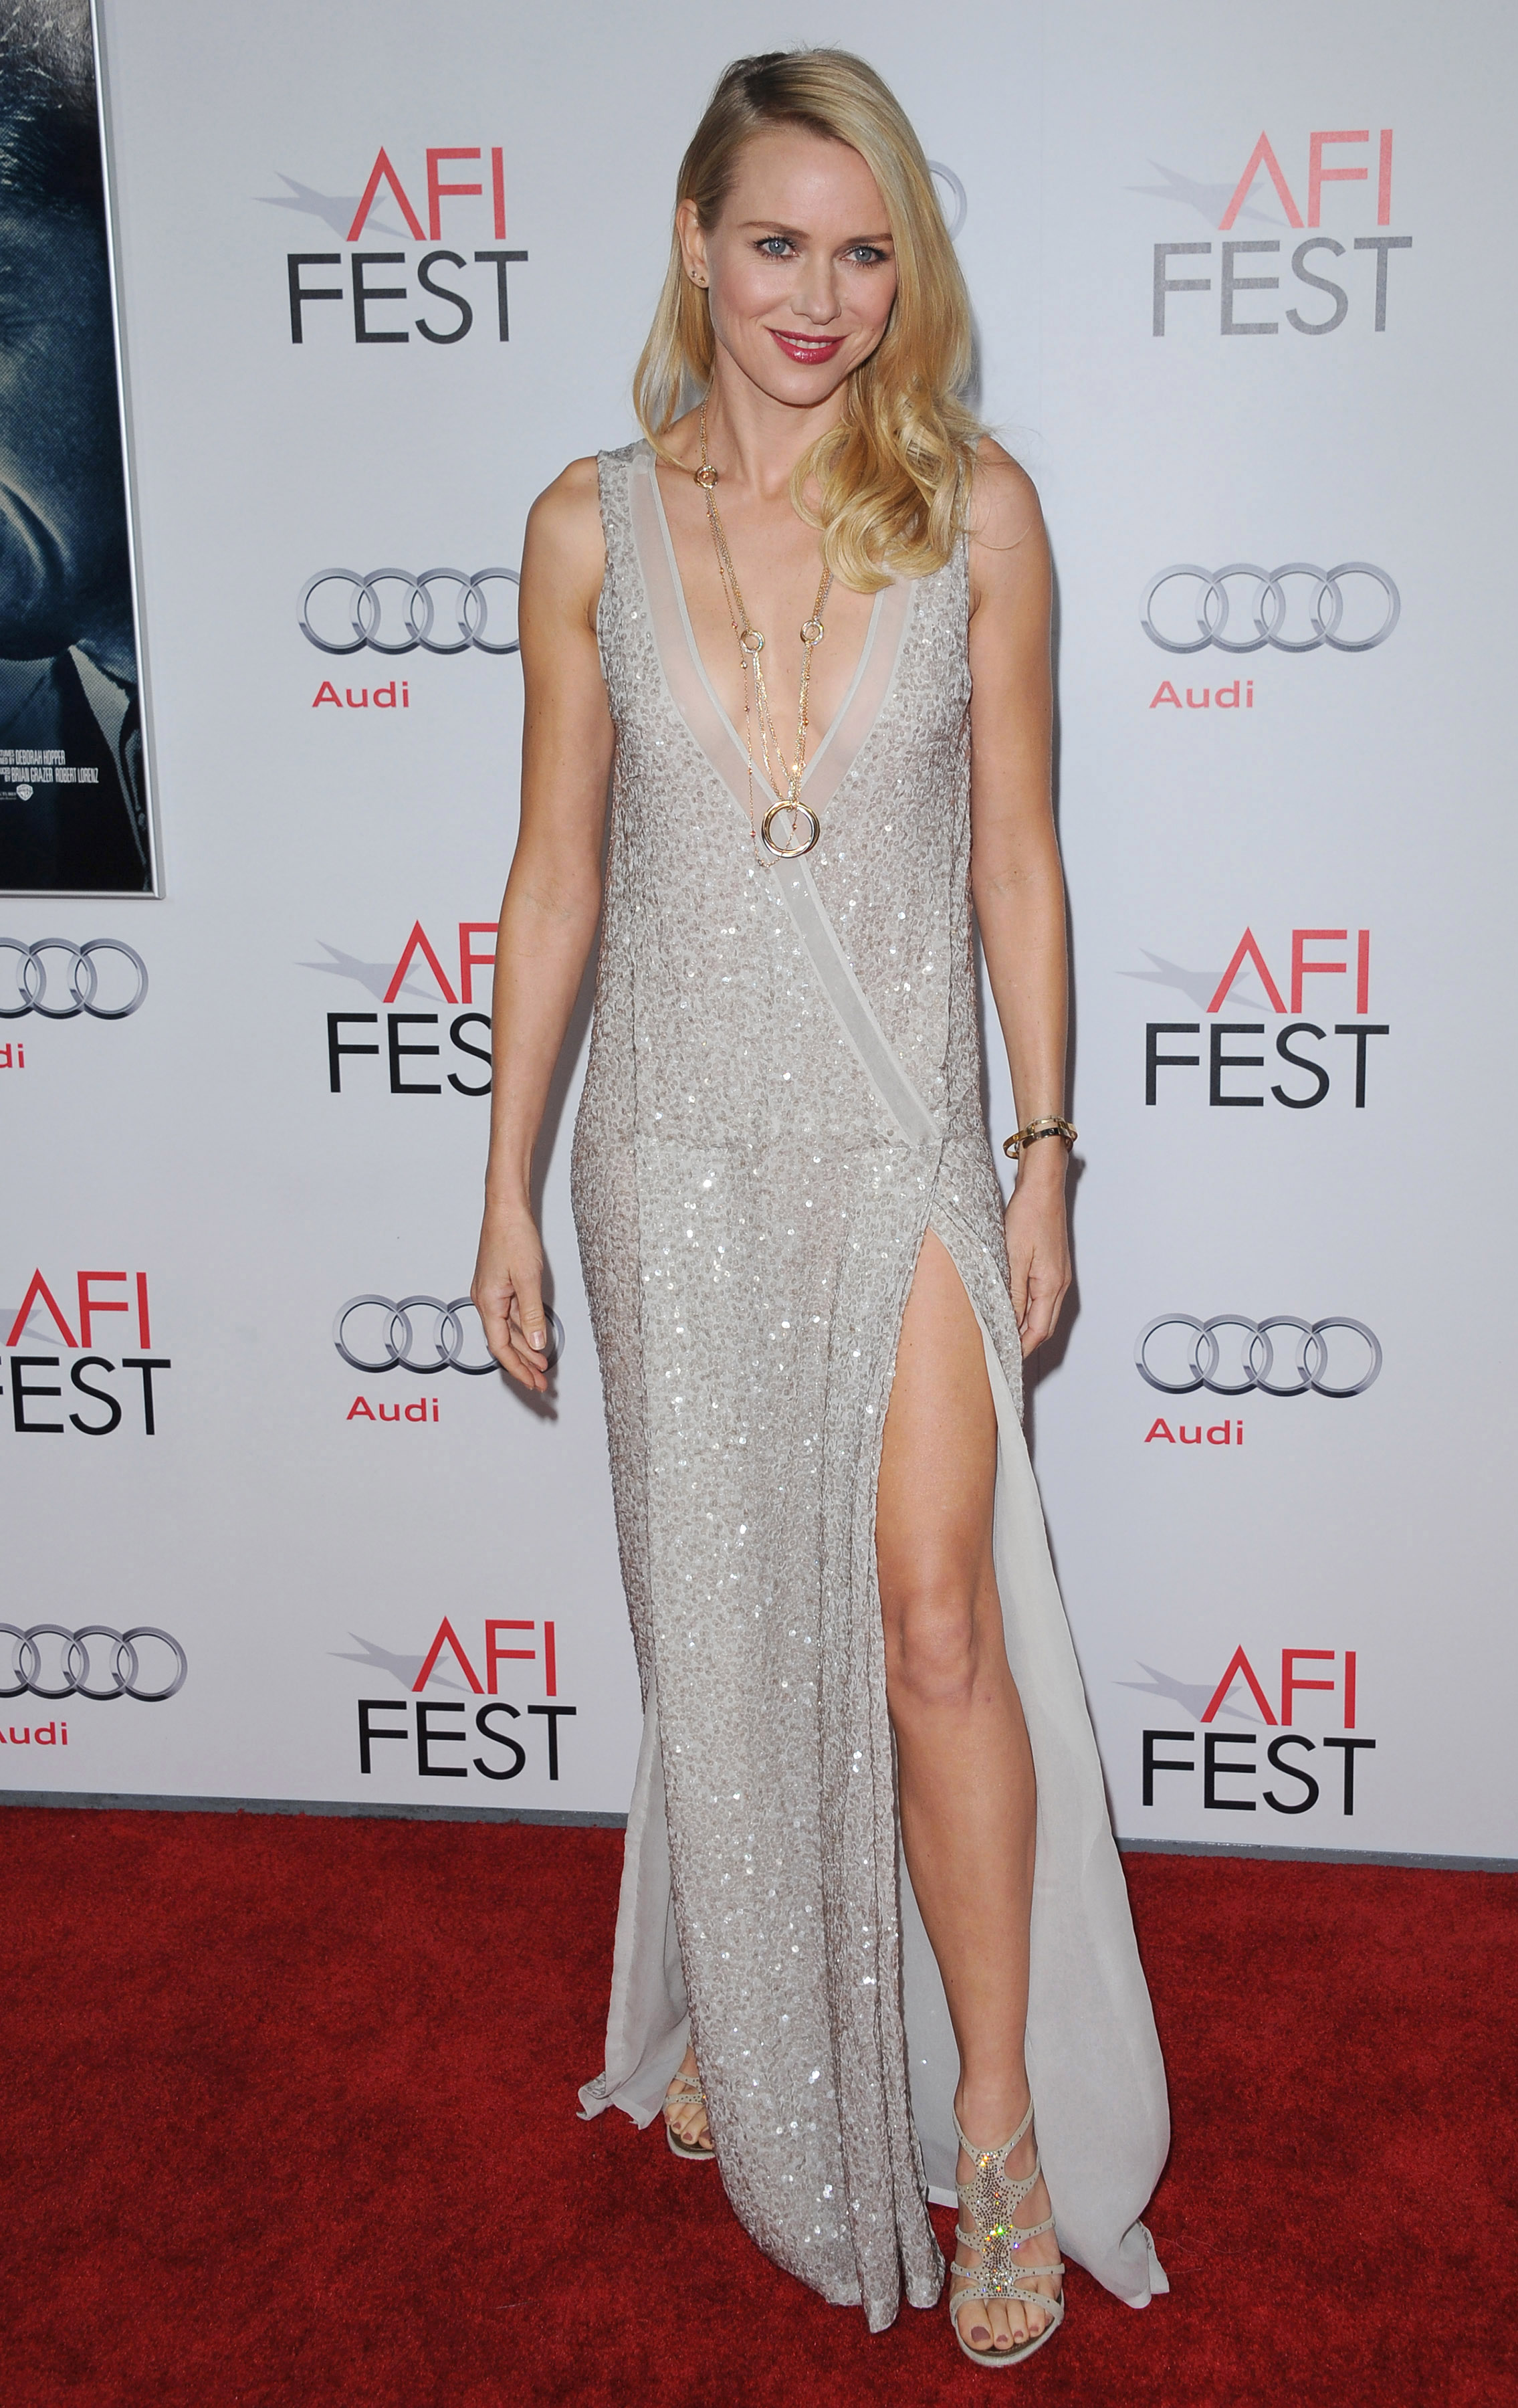 Naomi Watts – Hot in Long Dress at J Edgar Premiere-01 – GotCeleb